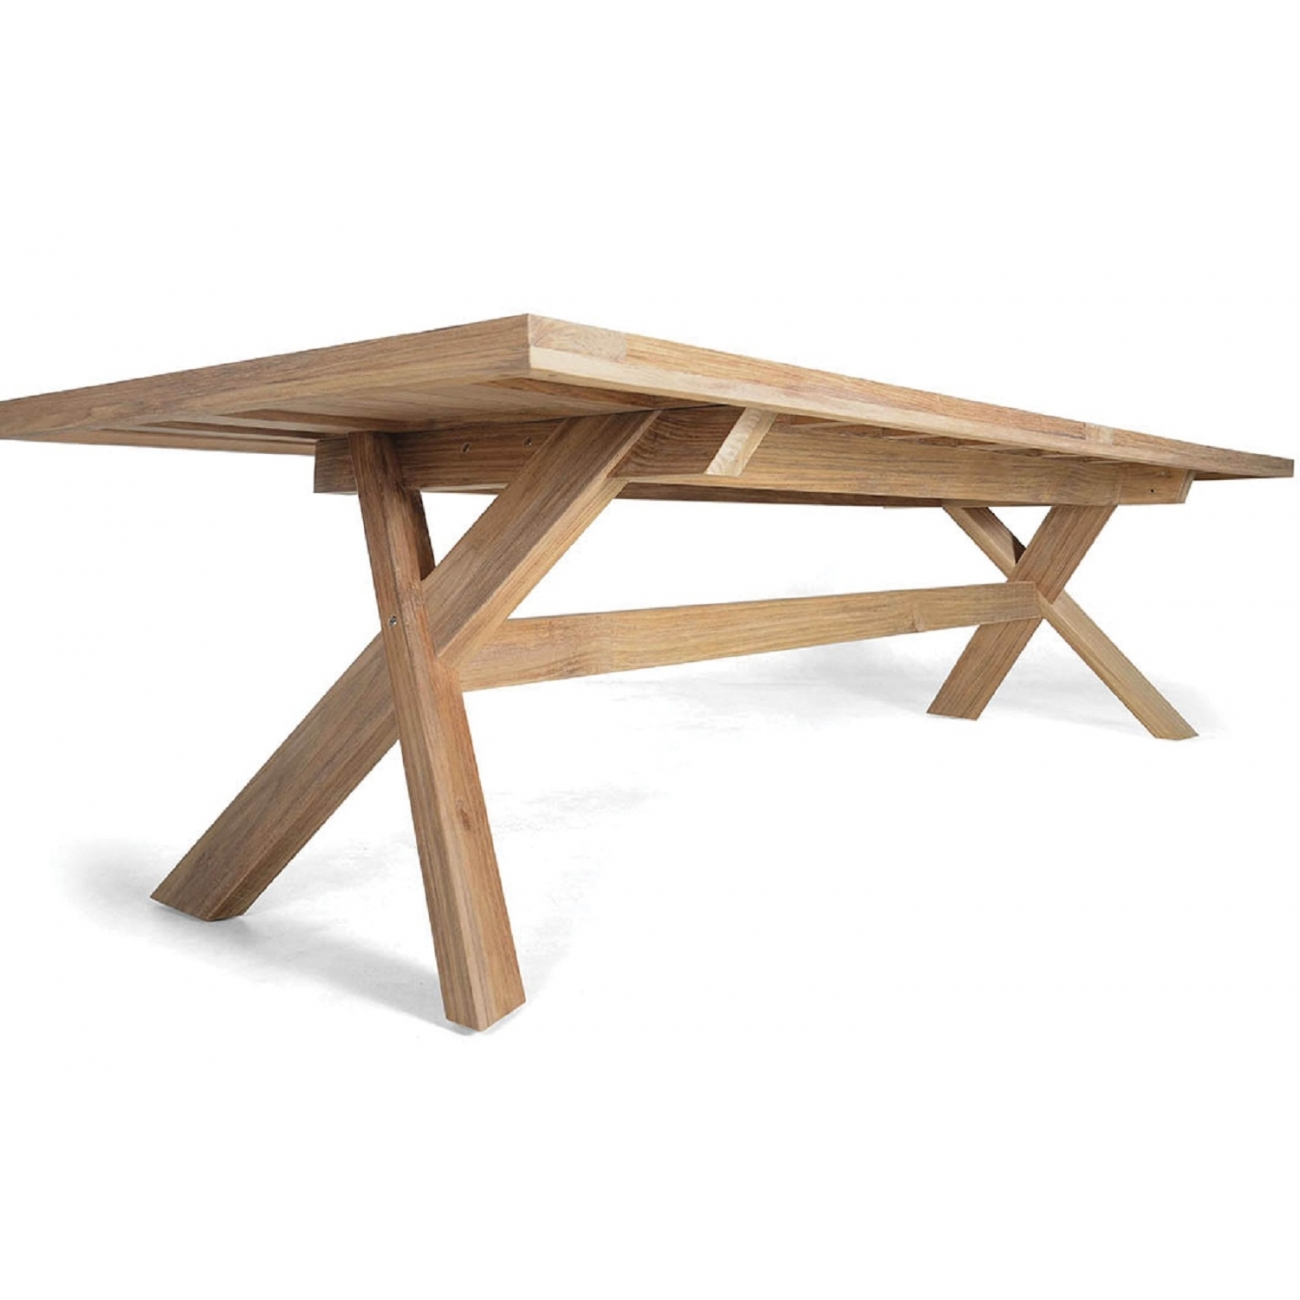 ATMOSPHERA TYPHOON 300 TAVOLO TEAK - TattaHome